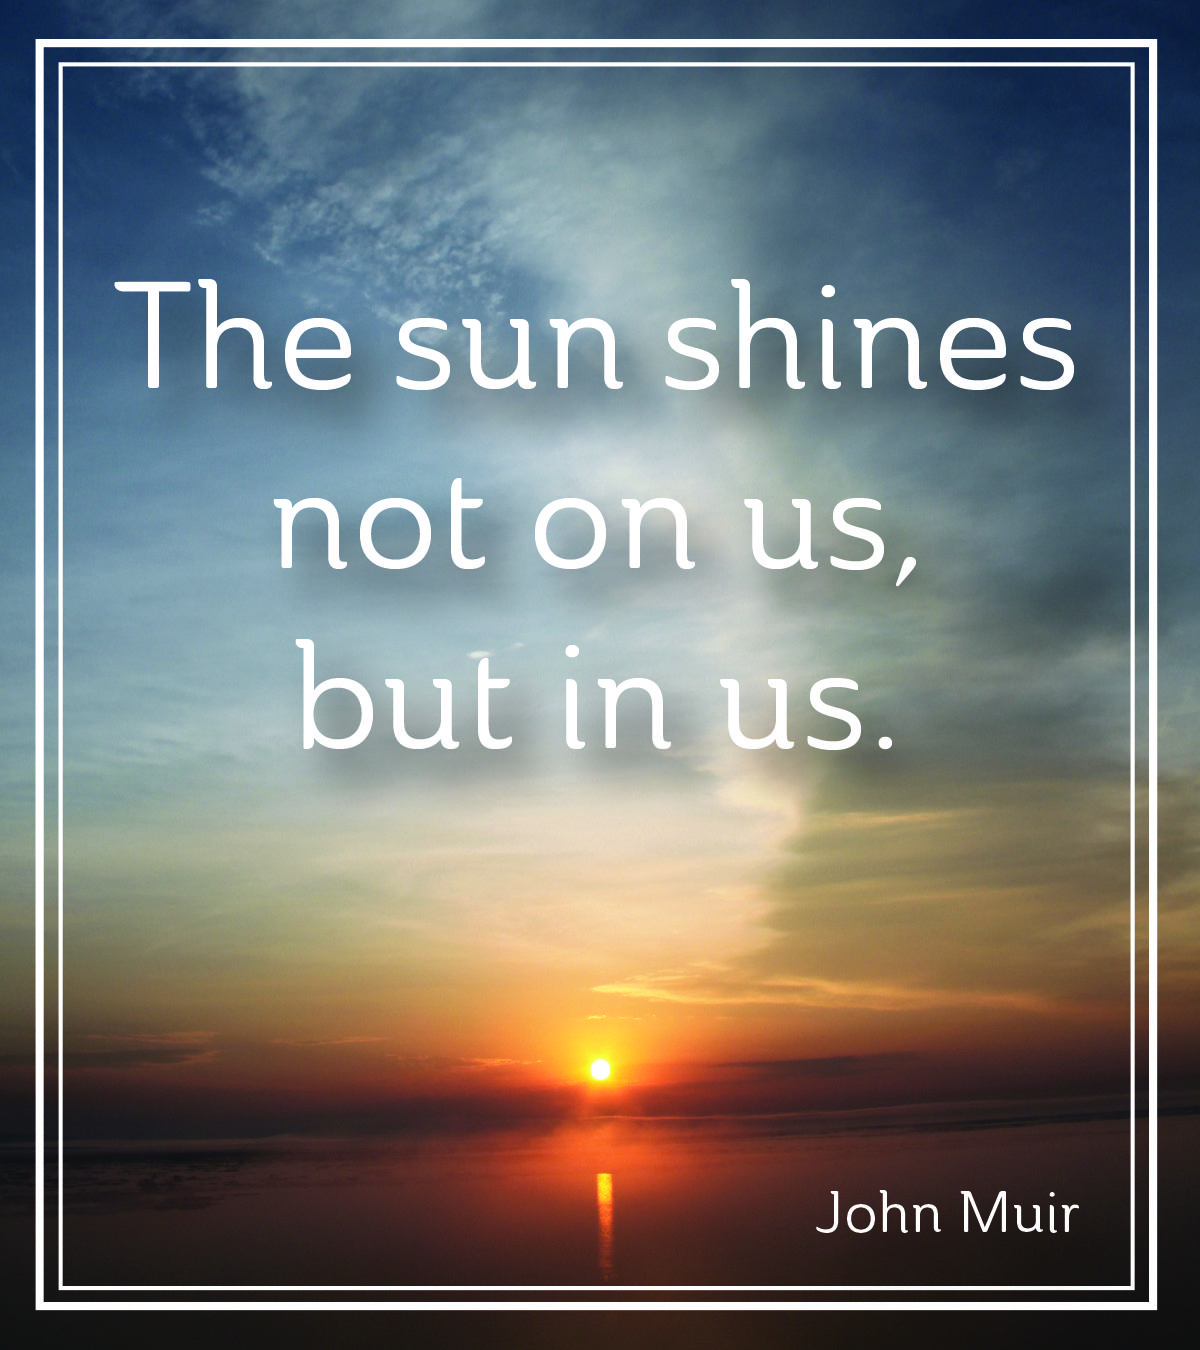 """The sun shines not on us, but in us."" John Muir John"